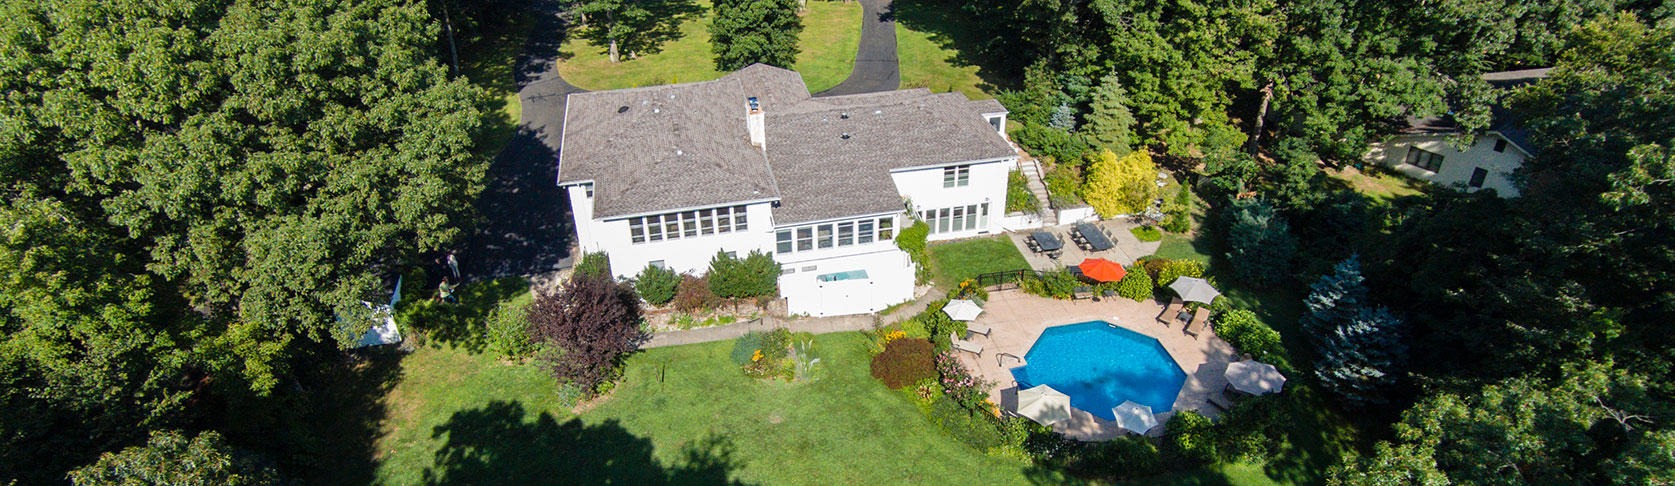 194 Sam Hill Rd, Guilford, CT